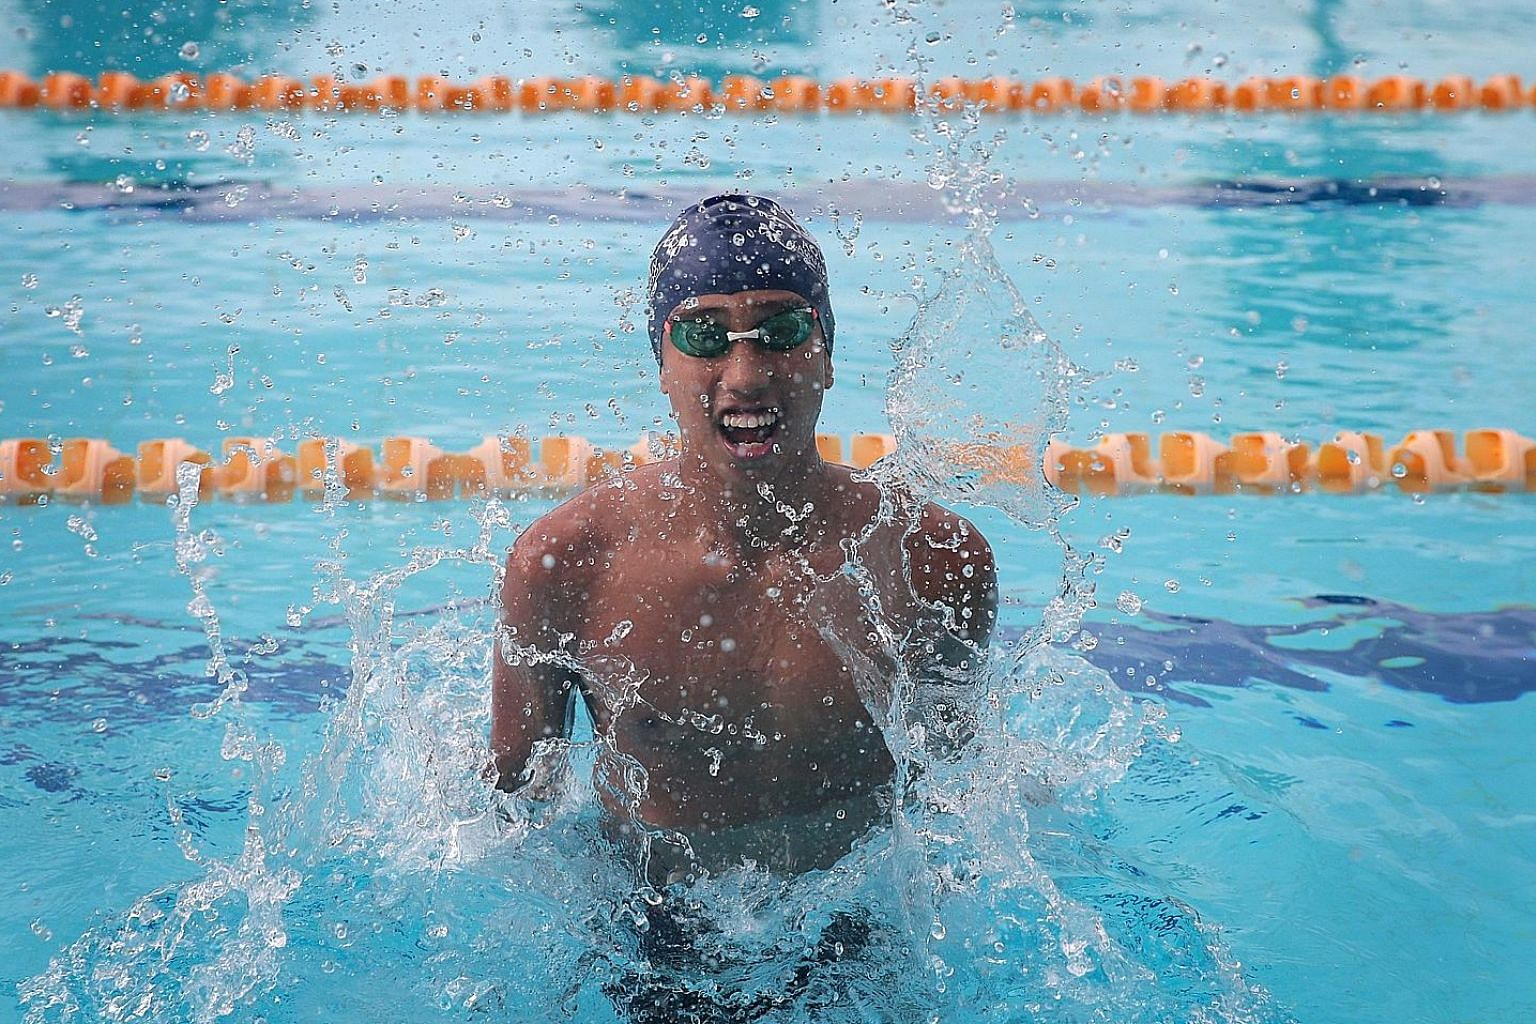 Outram Secondary School swimmer Ardi Zulhilmi Mohamed Azman overcame sudden illness to win the B boys' 1,500m freestyle at the Schools National Swimming Championships last month. He also won the 200m individual medley gold.